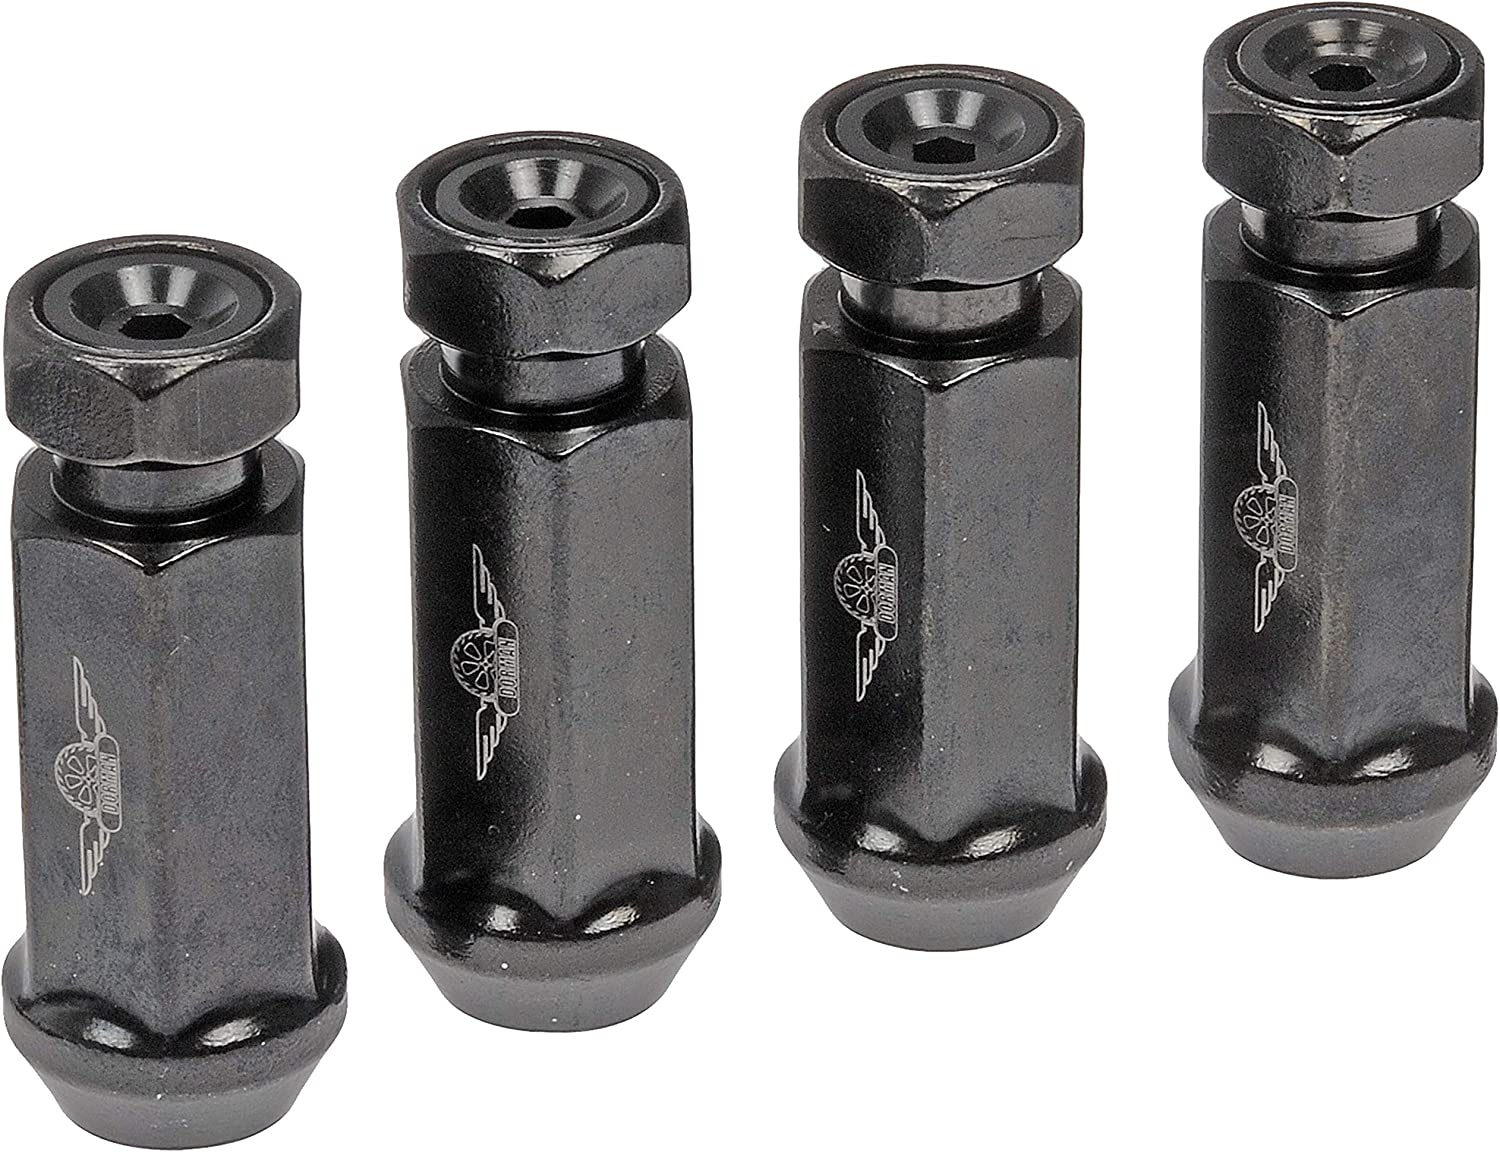 Pack of 20 Dorman 712-645A M14-1.50 Racing Style Wheel Nut for Select Models Black